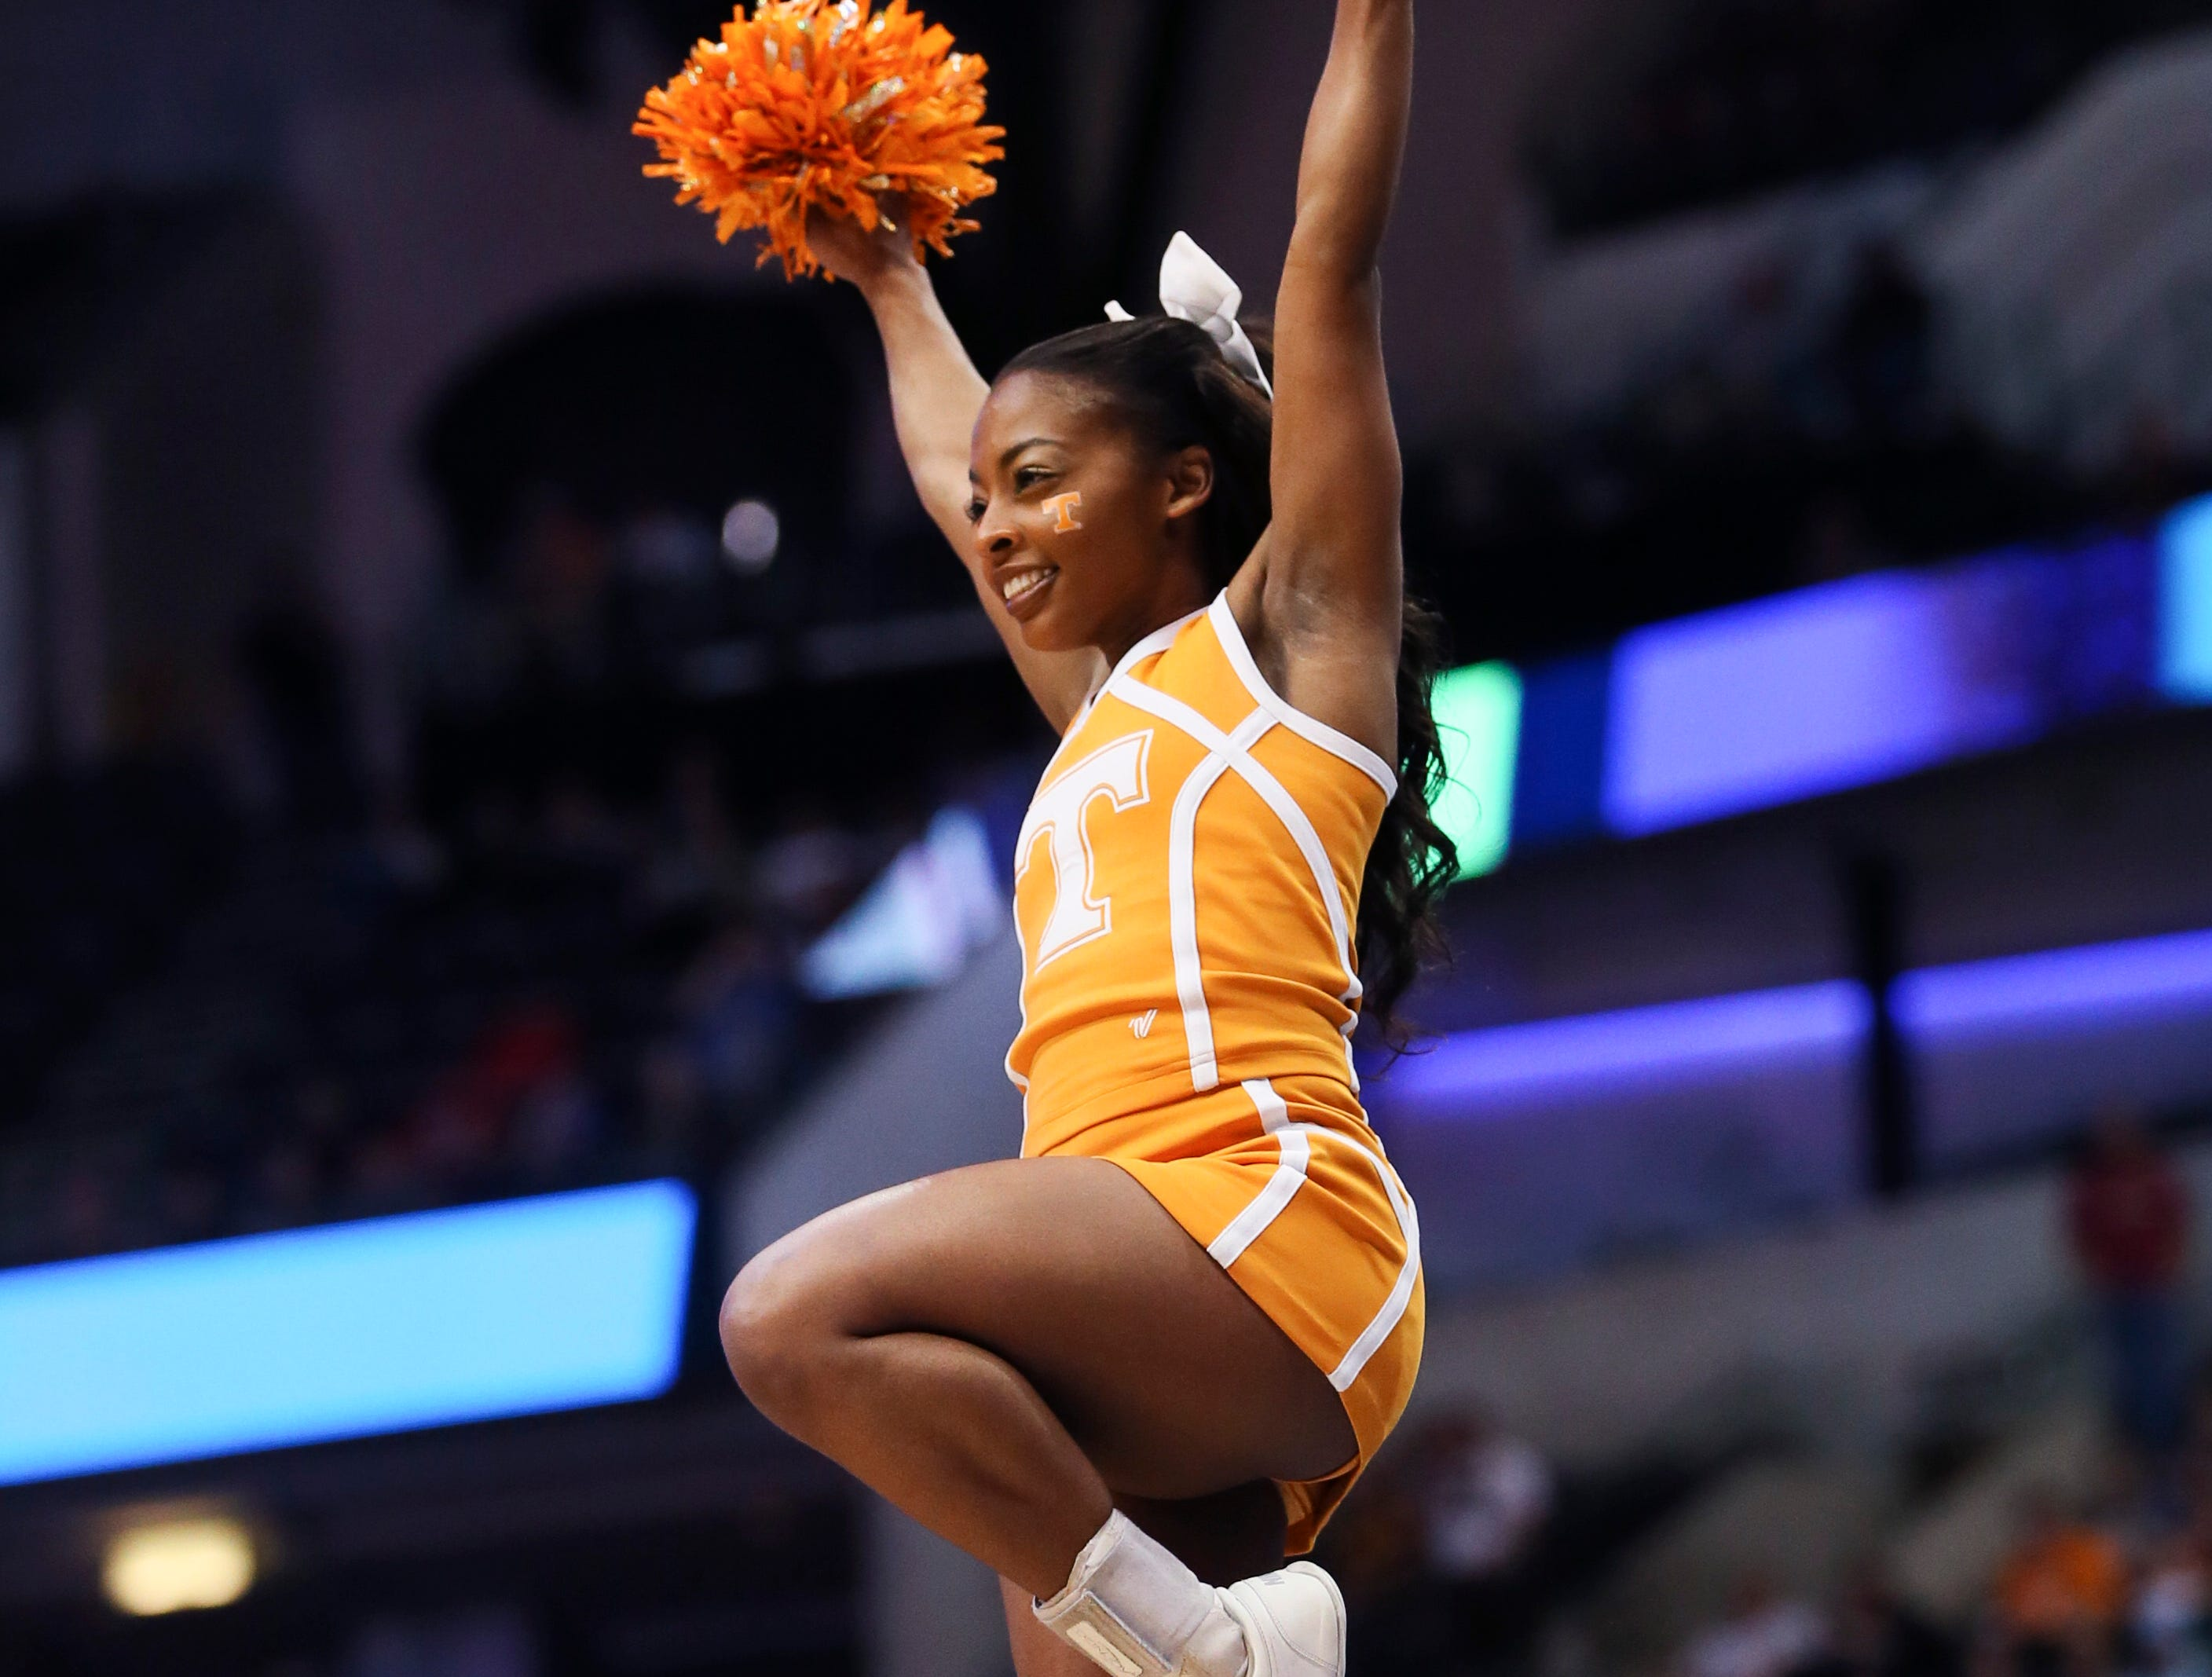 Mar 17, 2018; Dallas, TX, USA; Tennessee Volunteers cheerleader performs before the game against the Loyola (Il) Ramblers in the second round of the 2018 NCAA Tournament at American Airlines Center.